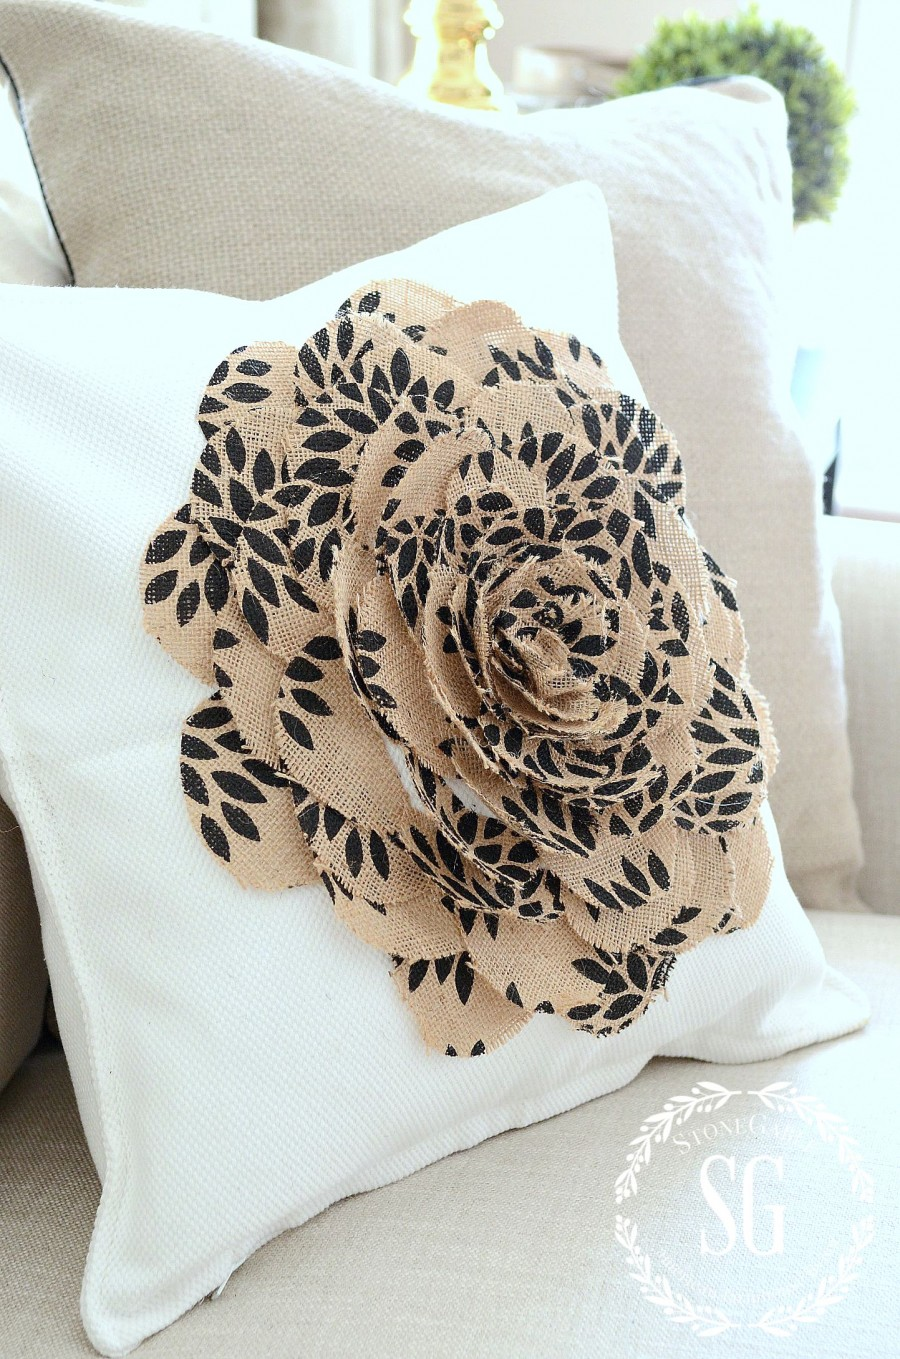 USING BURLAP IN DECOR- burlap-flower-pillow-stonegableblog.com